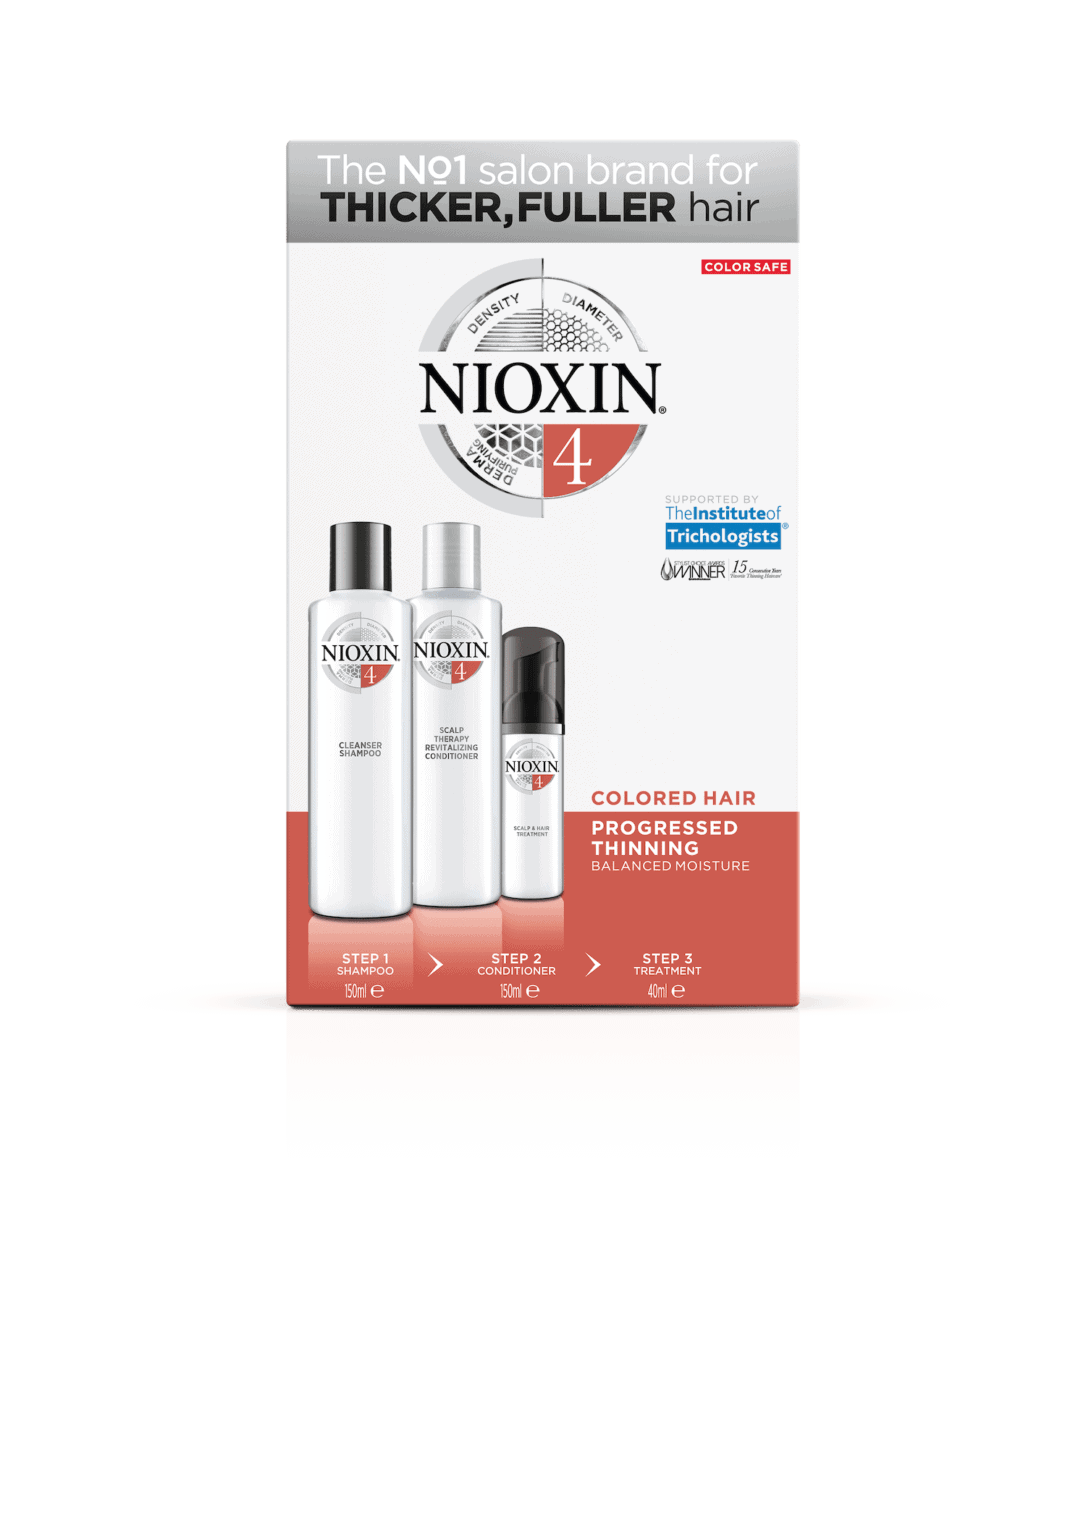 Nioxin Syst4 Trial Kit